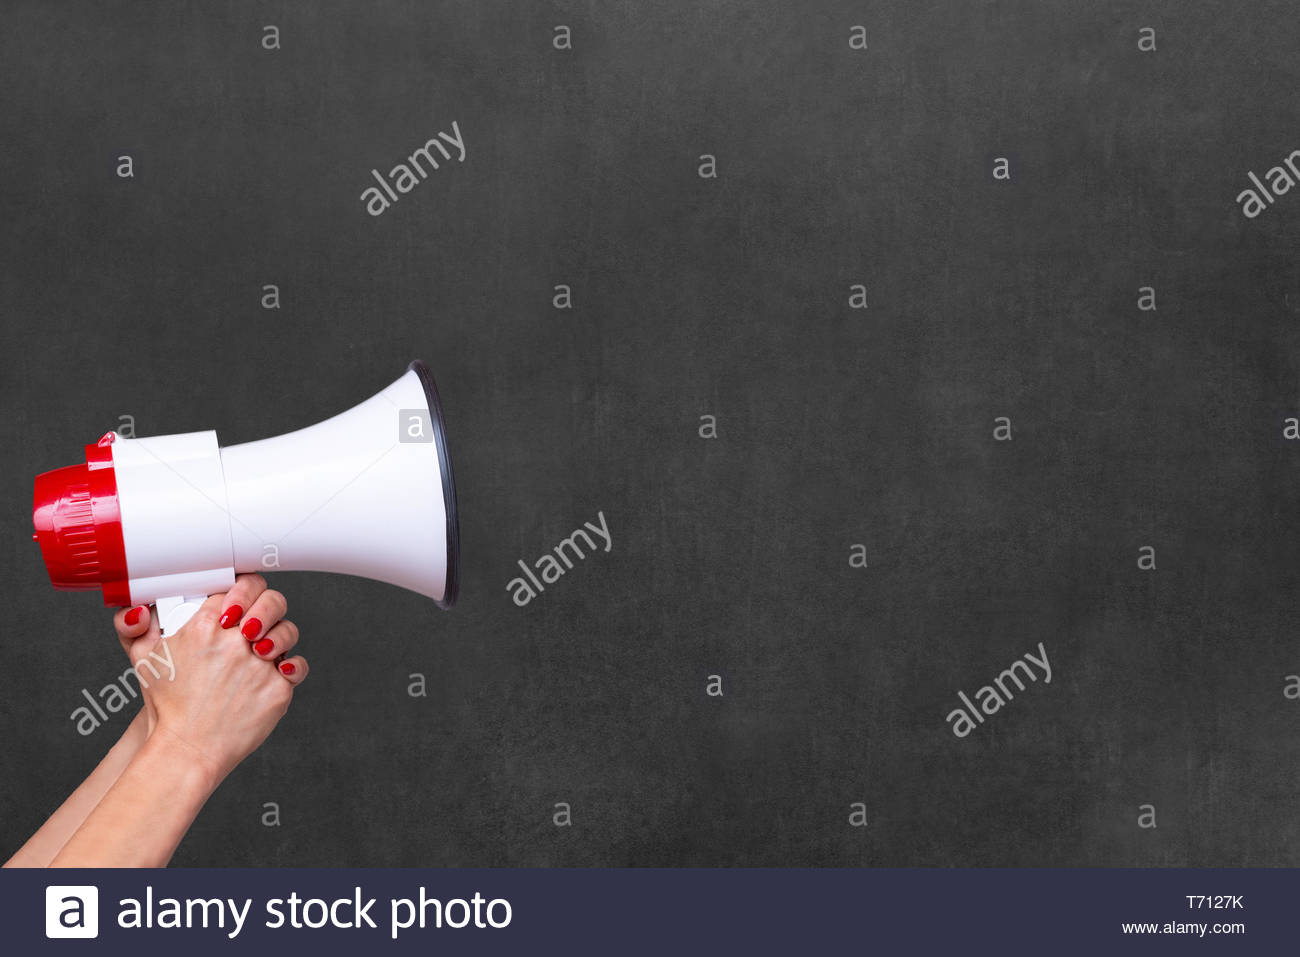 Person holding a megaphone or loud hailer - Stock Image